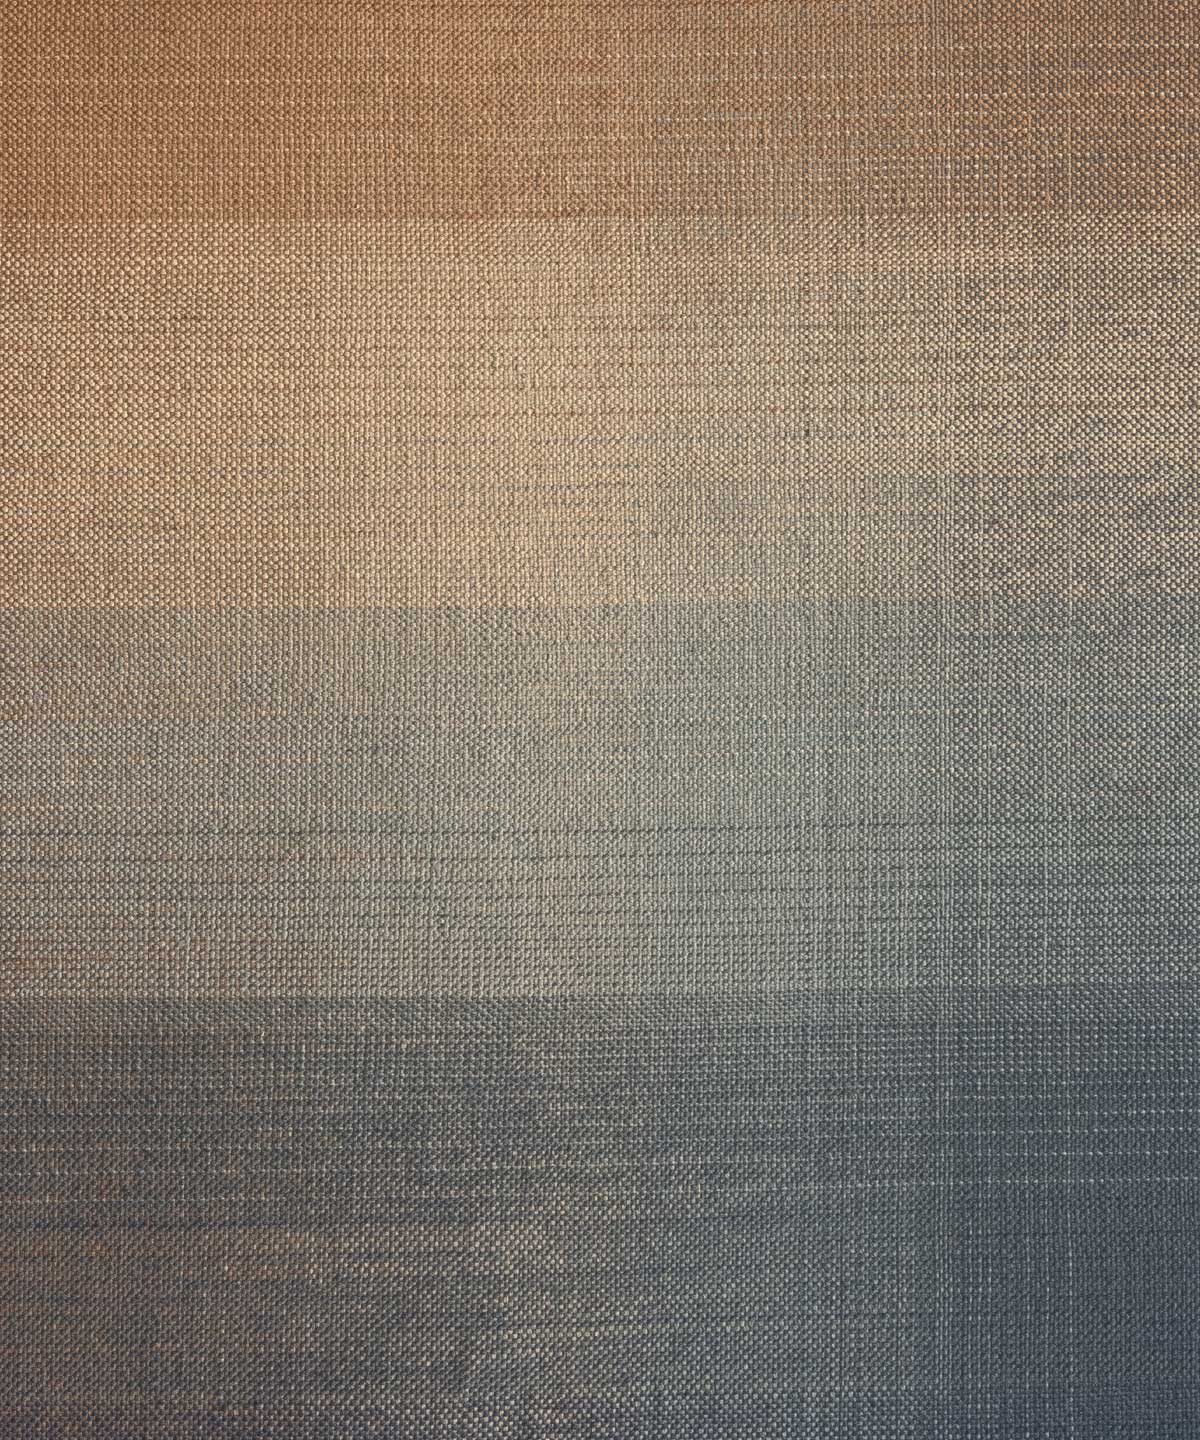 Shade Outdoor Rug in Palette 2